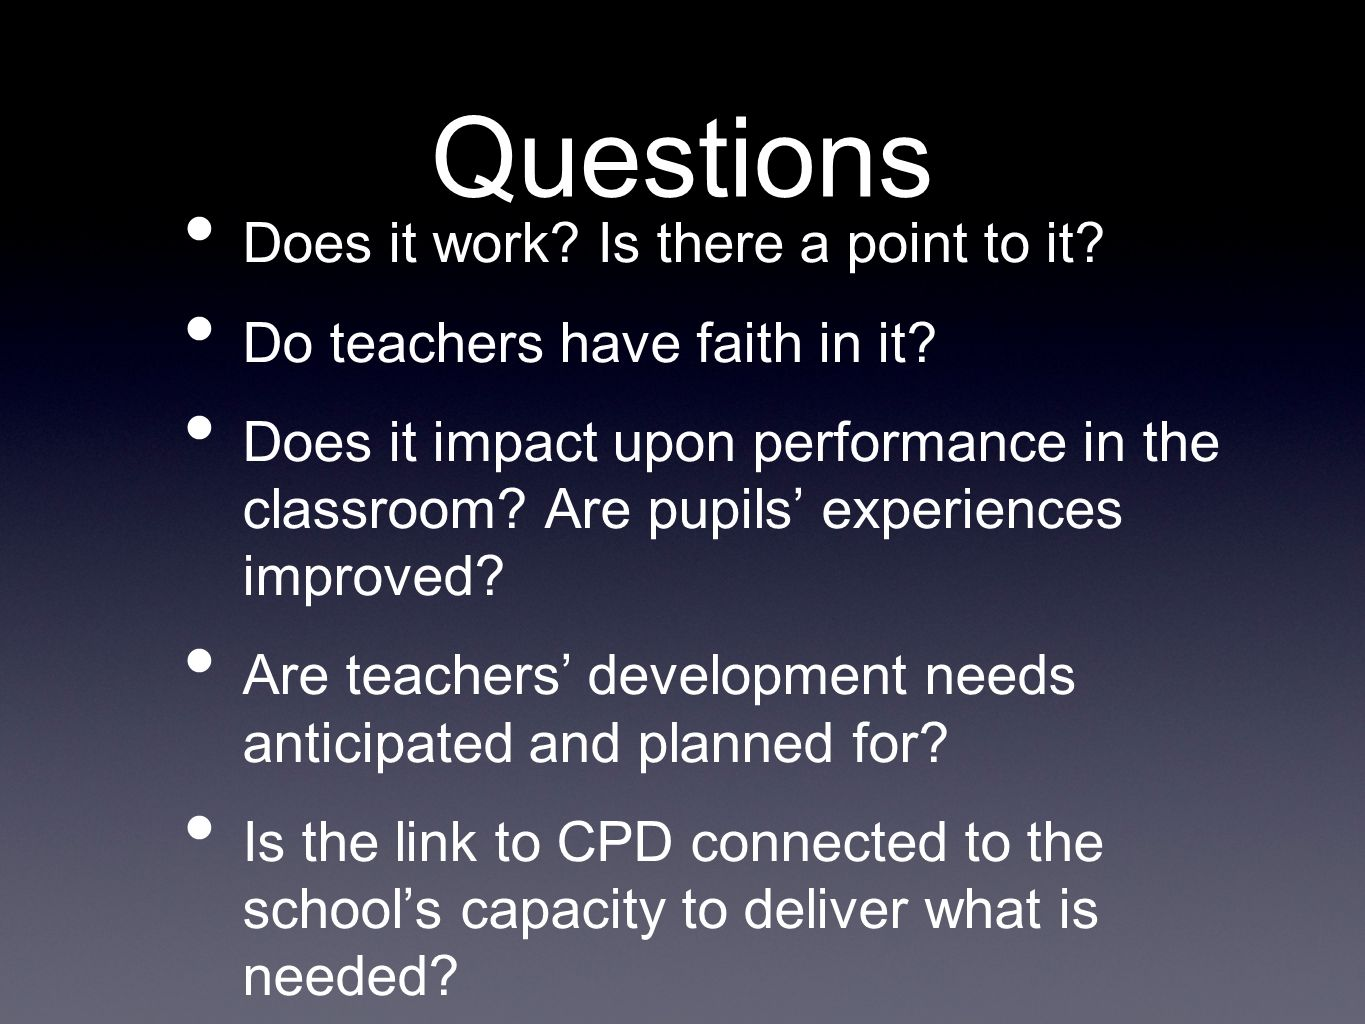 Questions Does it work? Is there a point to it? Do teachers have faith in it? Does it impact upon performance in the classroom? Are pupils experiences